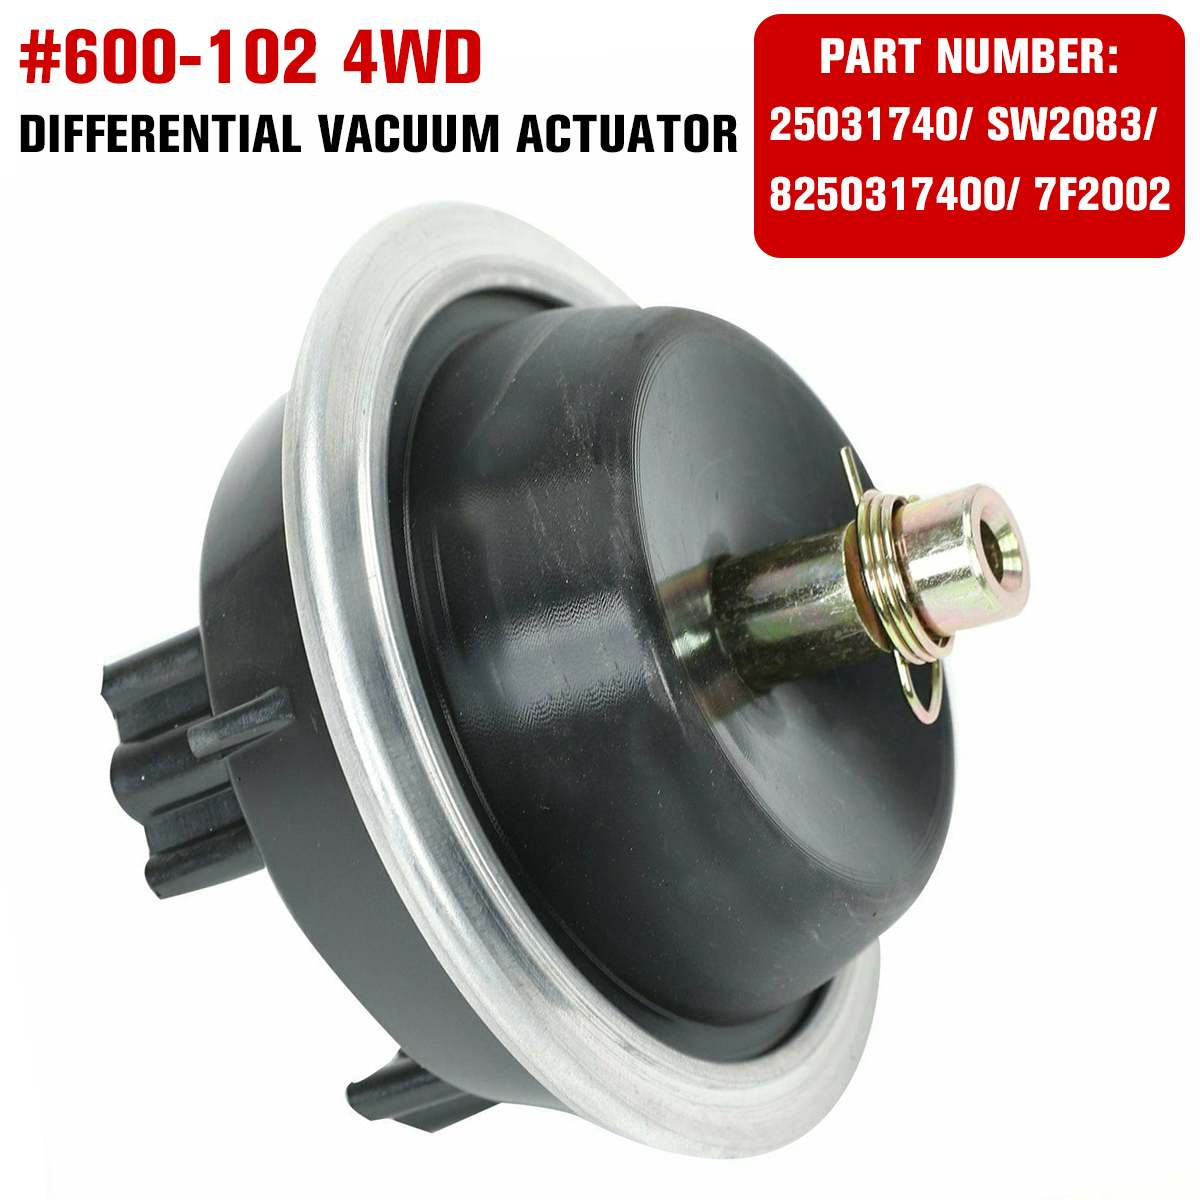 NEW Professional 600-102 4WD Differential Vacuum Actuator For Chevrolet For GMC For Pontiac 1983-2005 25031740